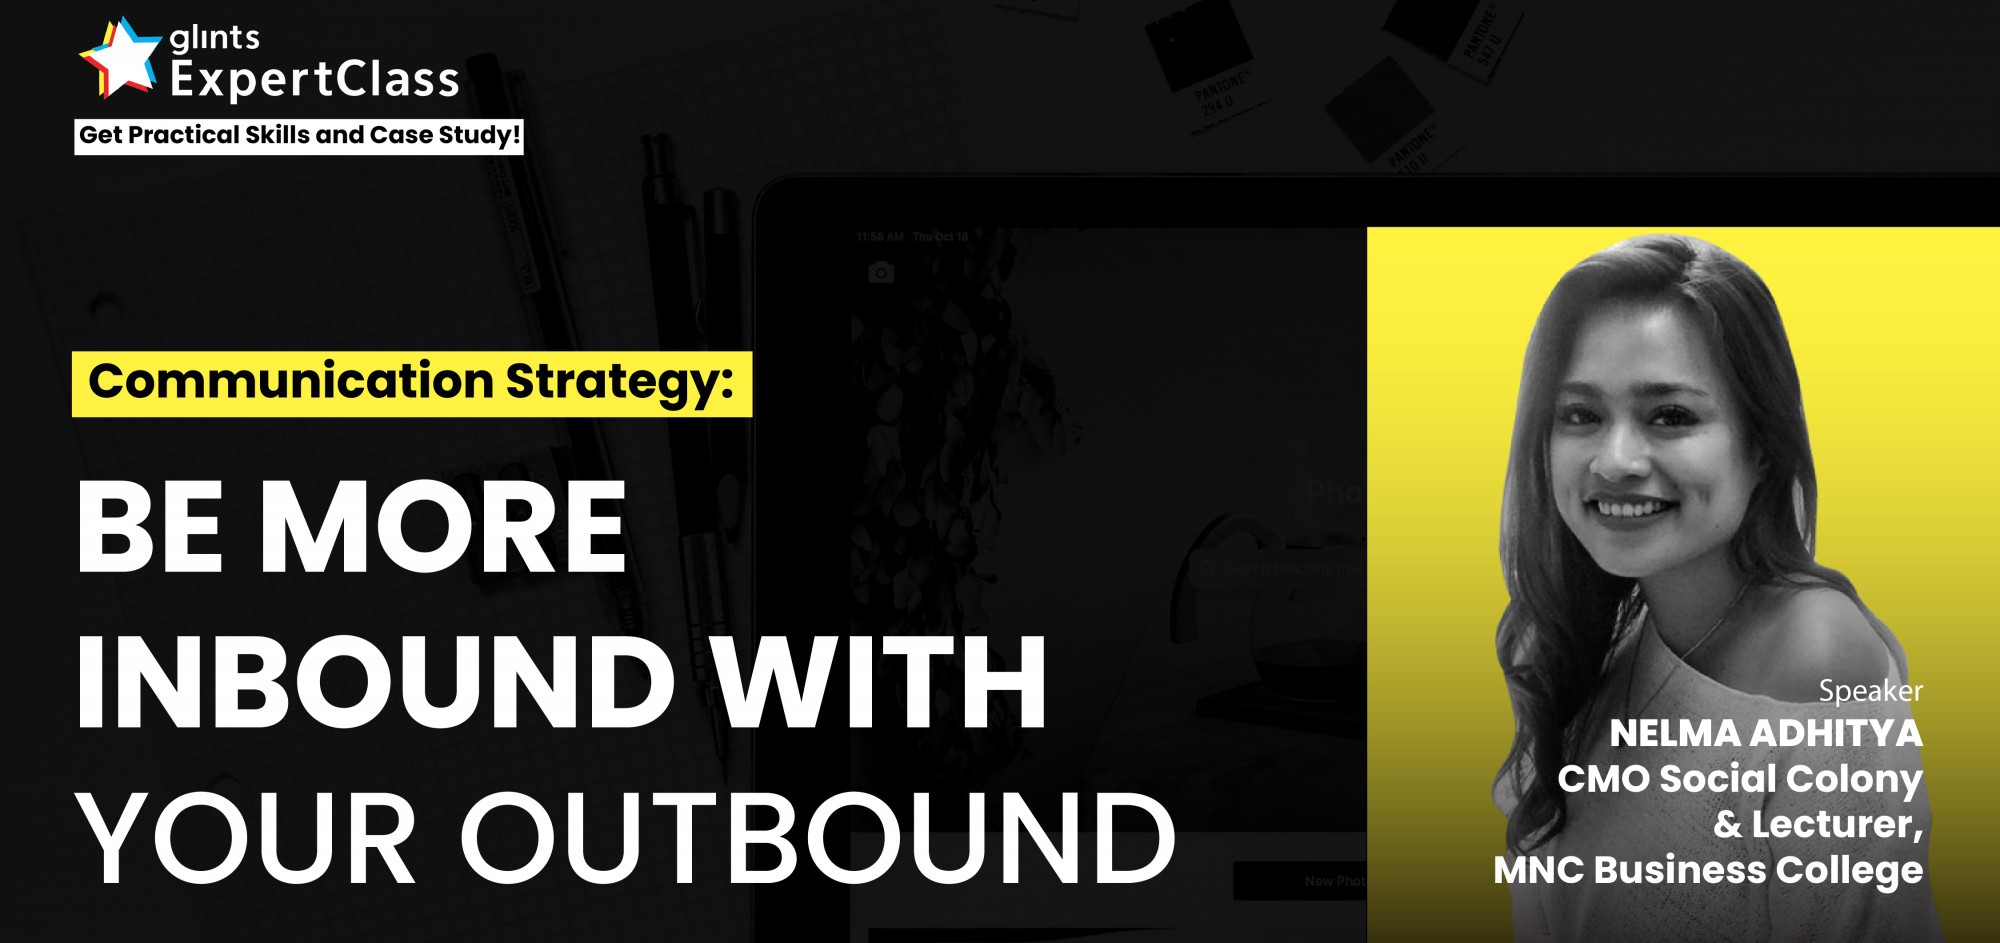 [Online Glints ExpertClass] Be More Inbound With Your Outbound